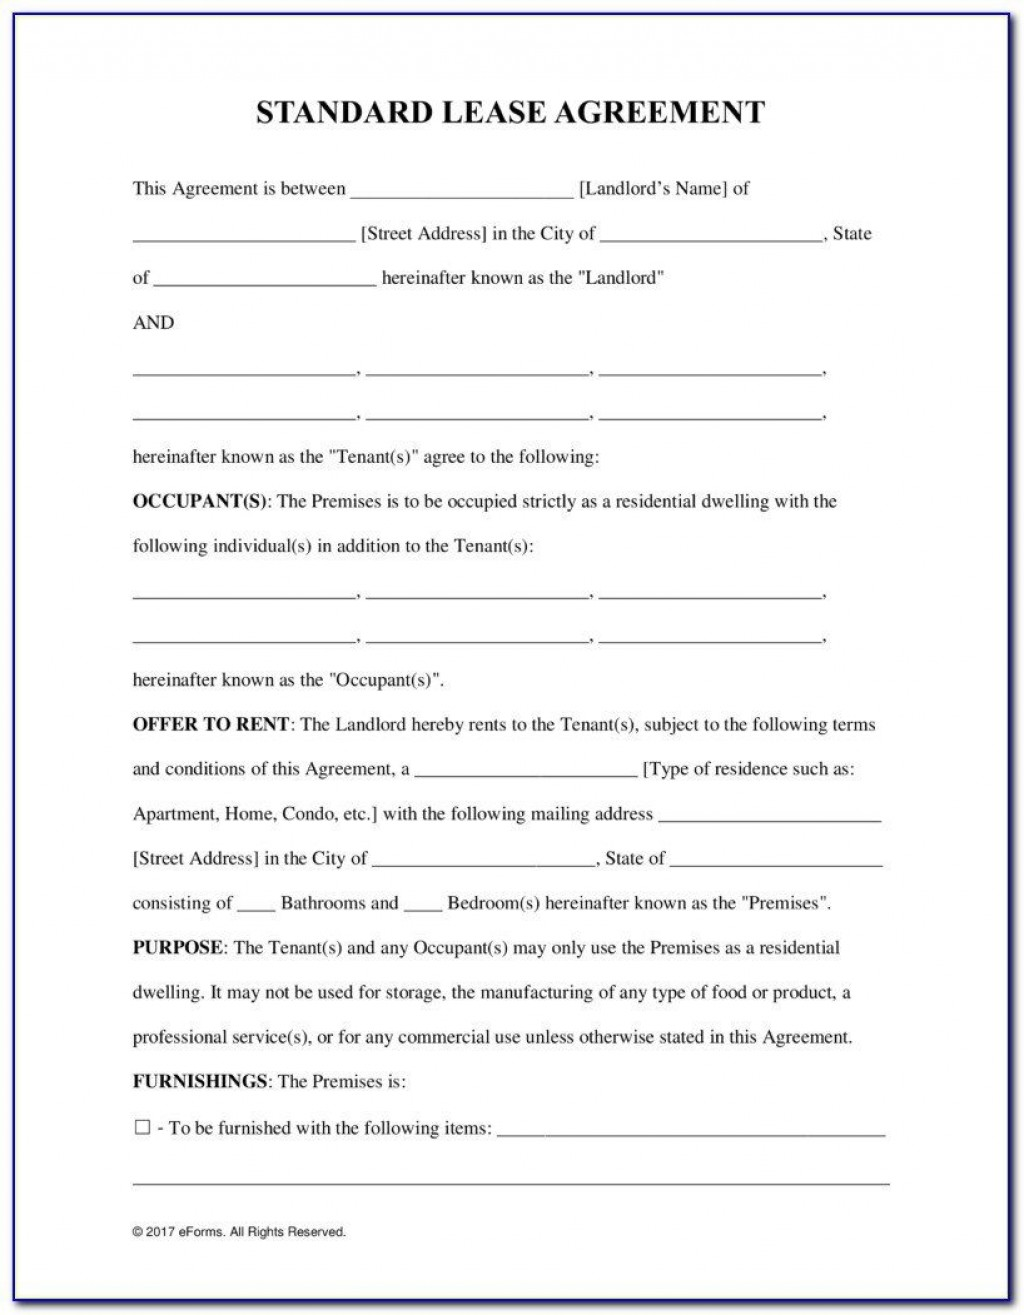 007 Outstanding Rent Agreement Format In Word Free Download Highest Quality  Rental Tamil Hindi For HouseLarge